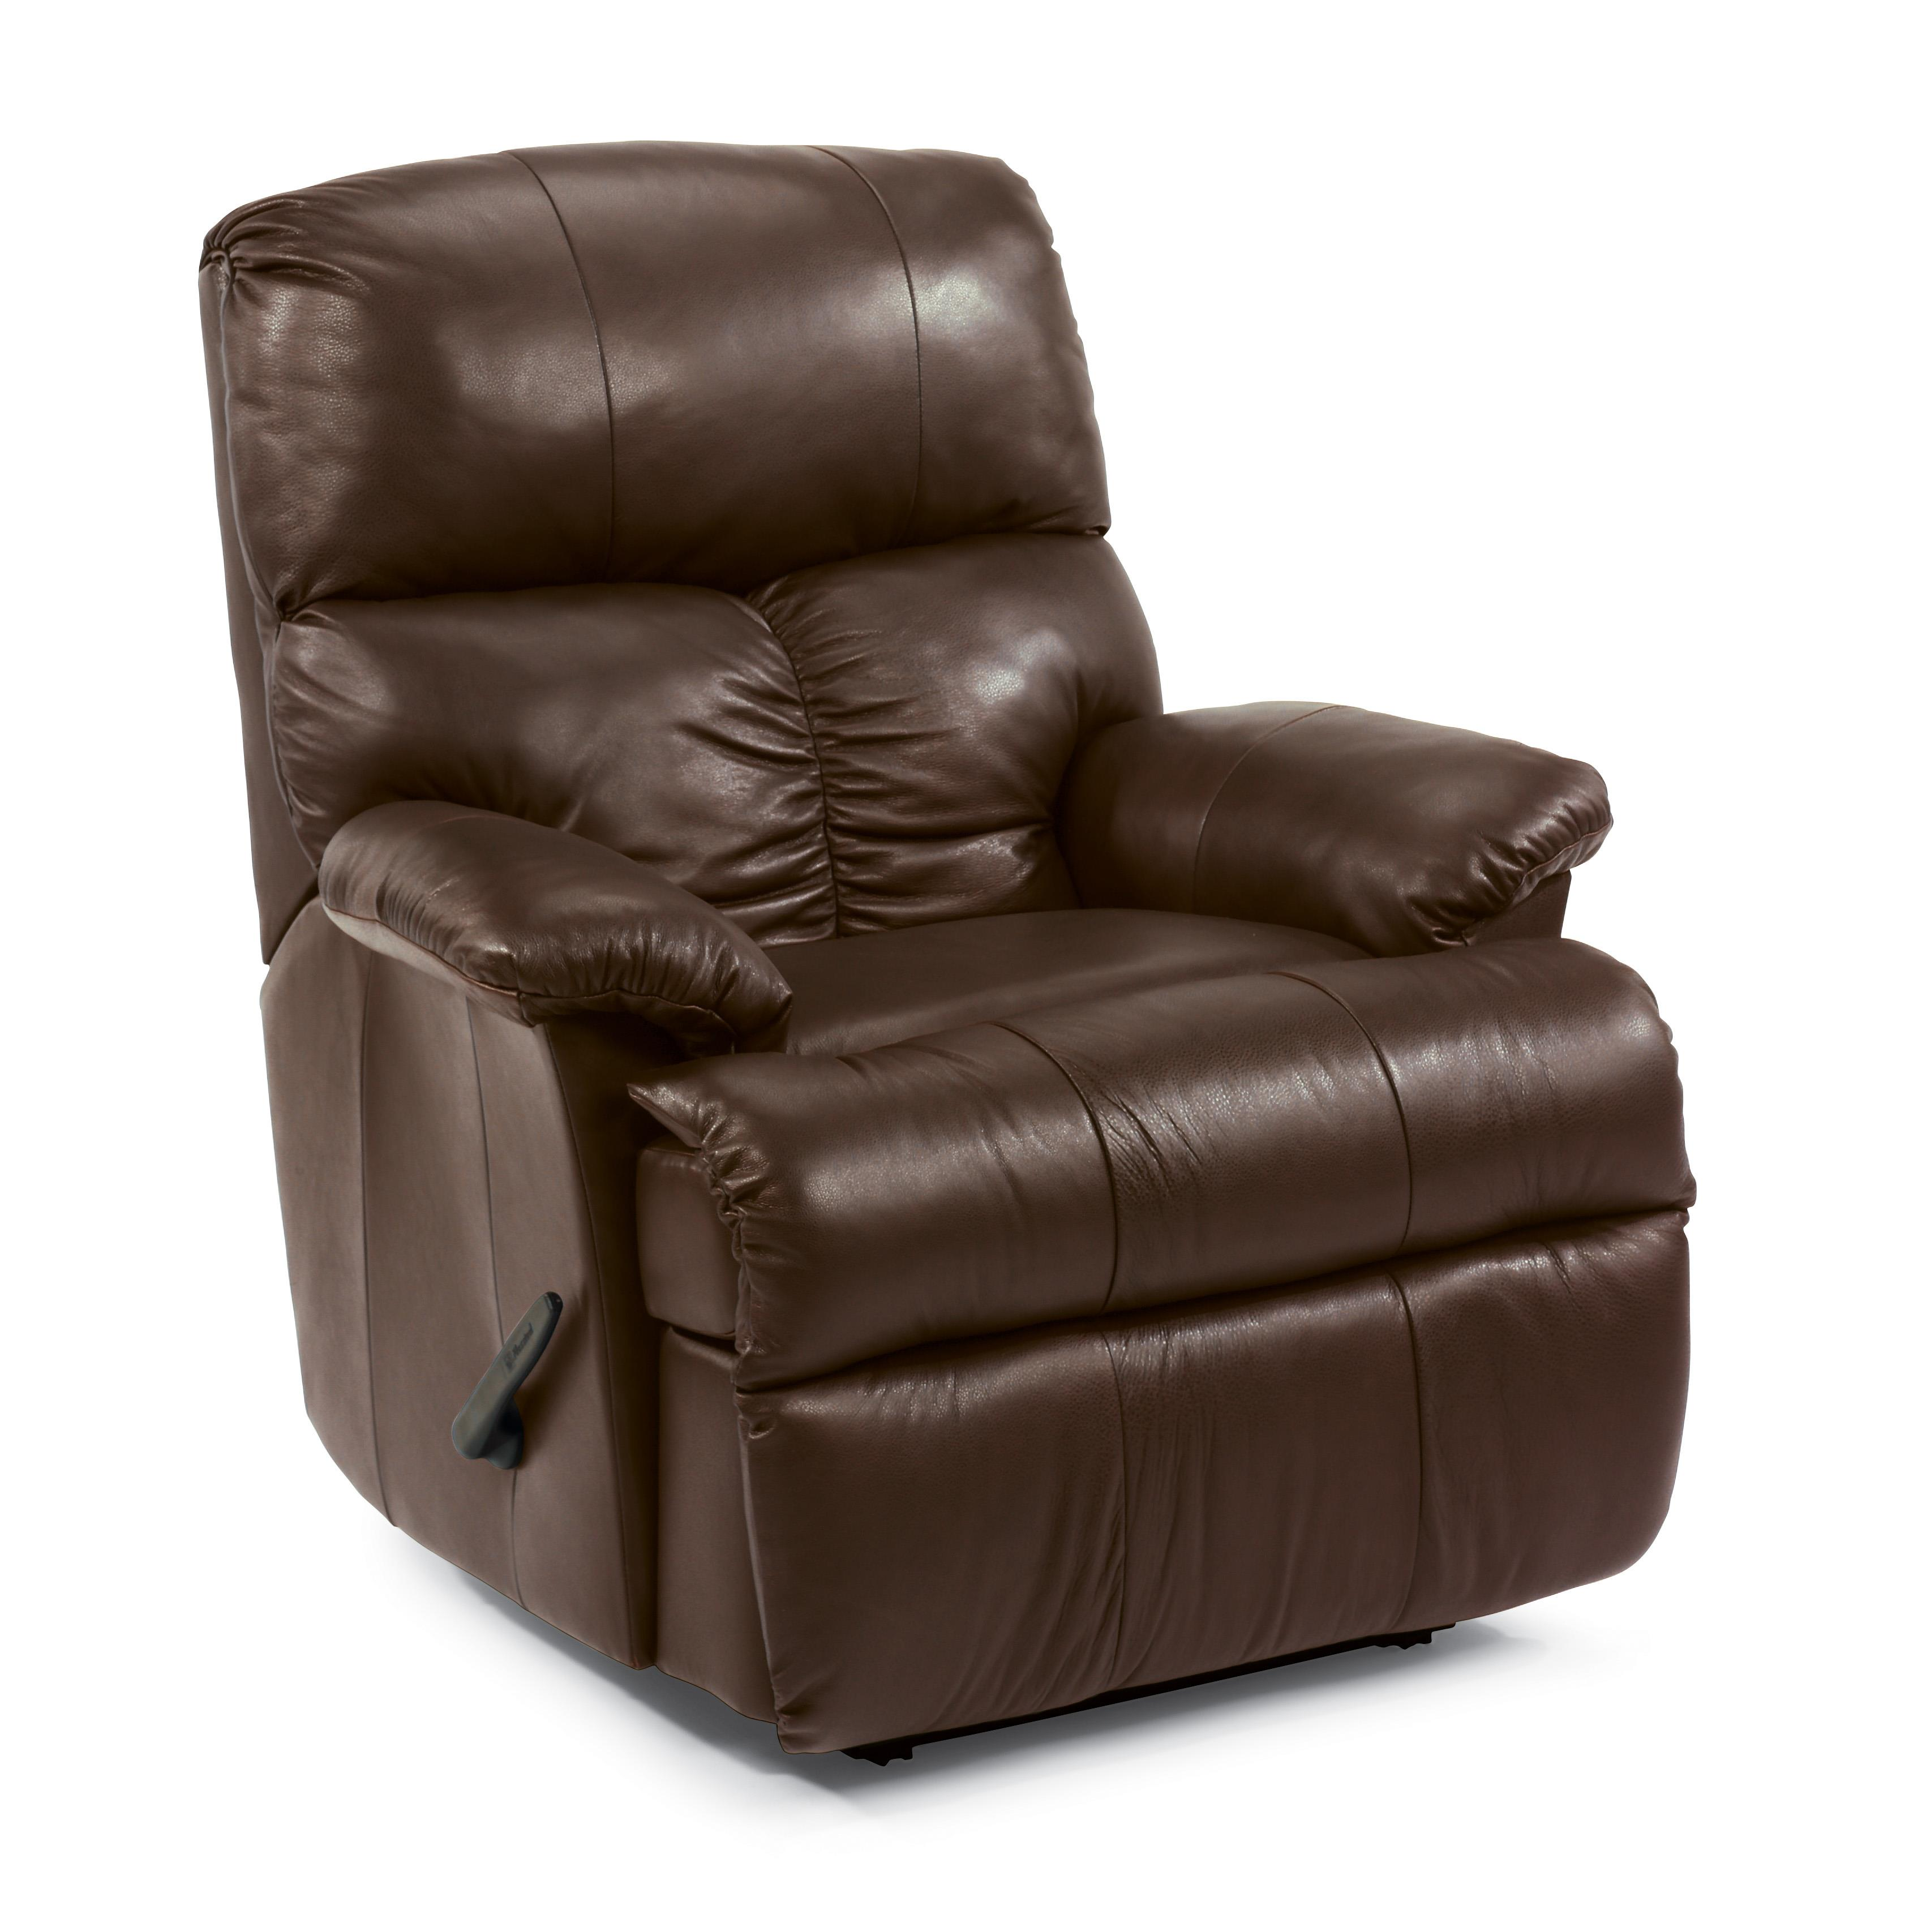 Flexsteel Triton Leather Wall Recliner Godby Home Furnishings Recliners